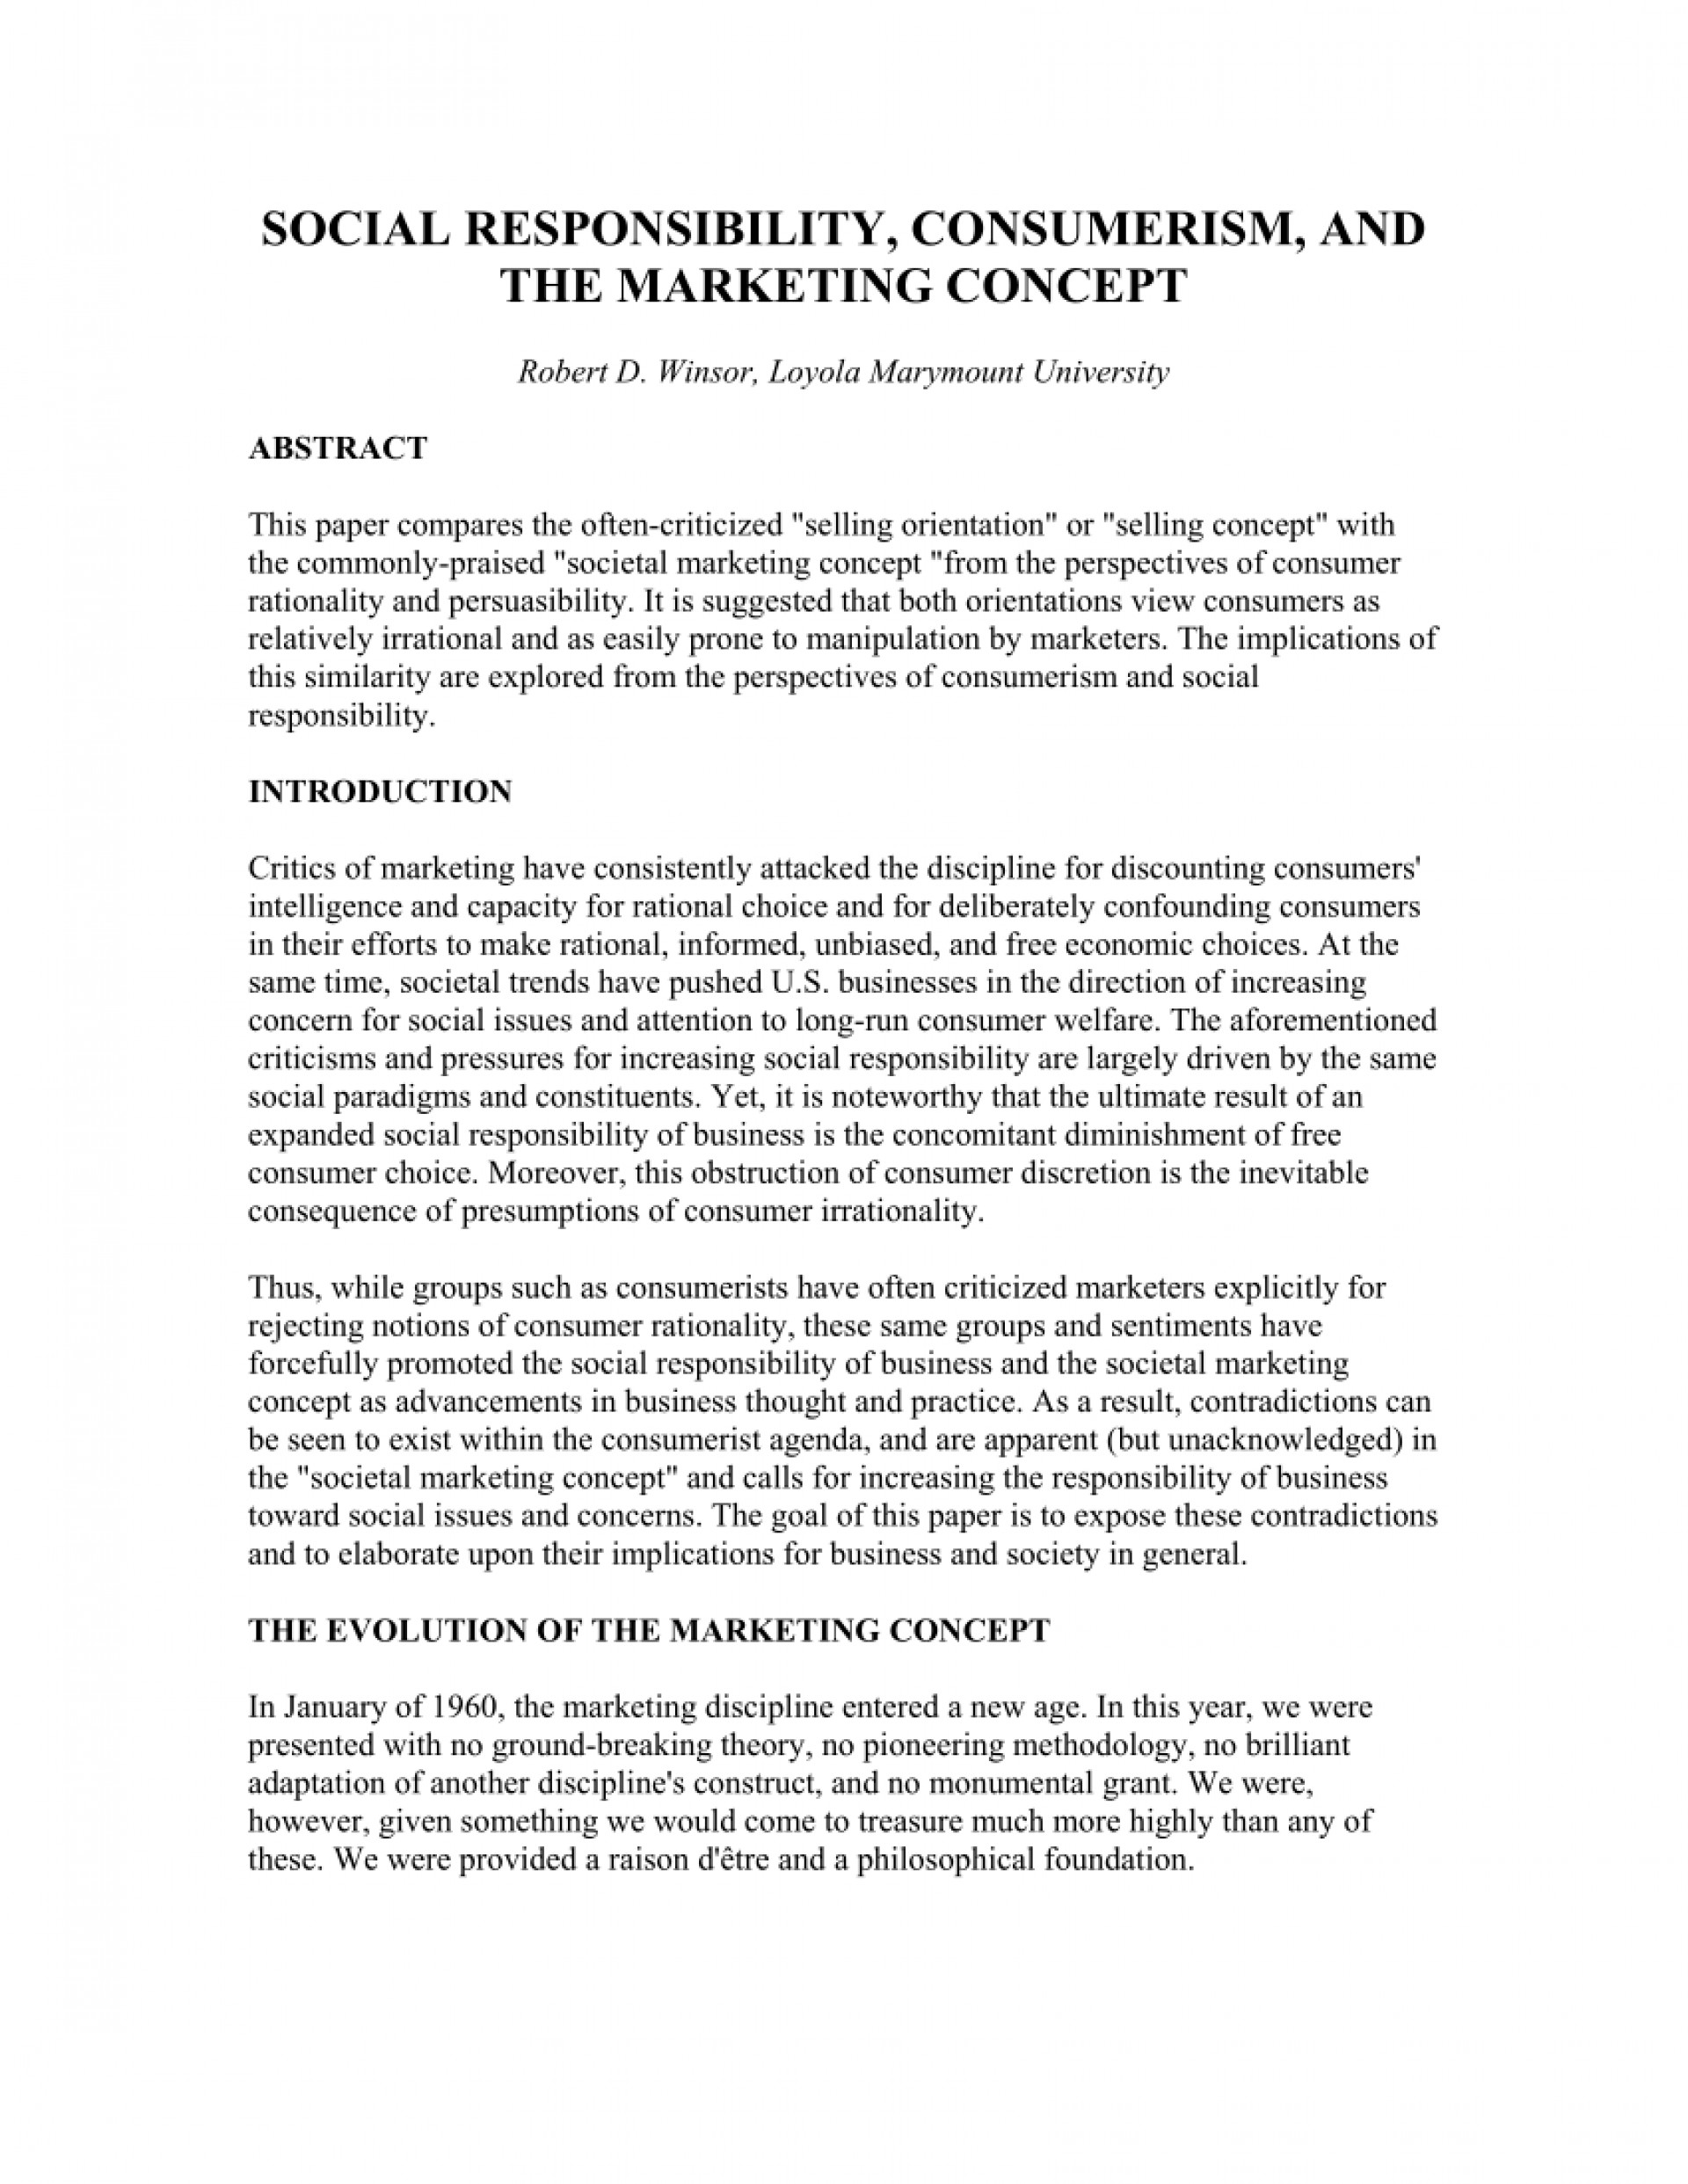 015 Largepreview Best Topics For Research Paper In Unbelievable Marketing 1920